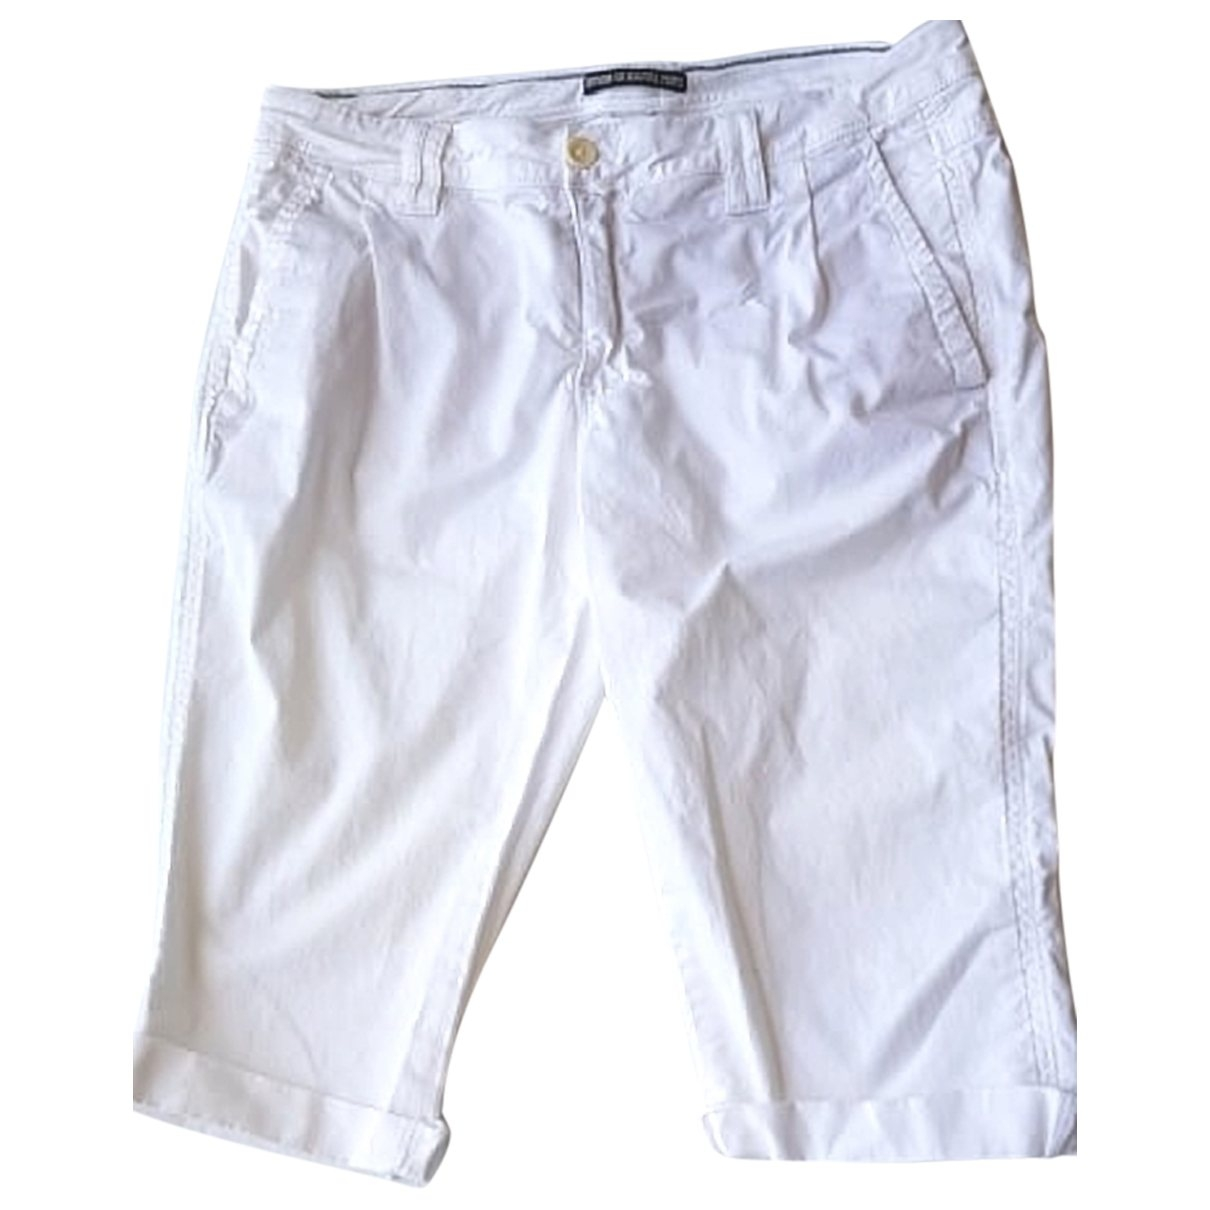 Drykorn \N White Cotton Trousers for Women S International